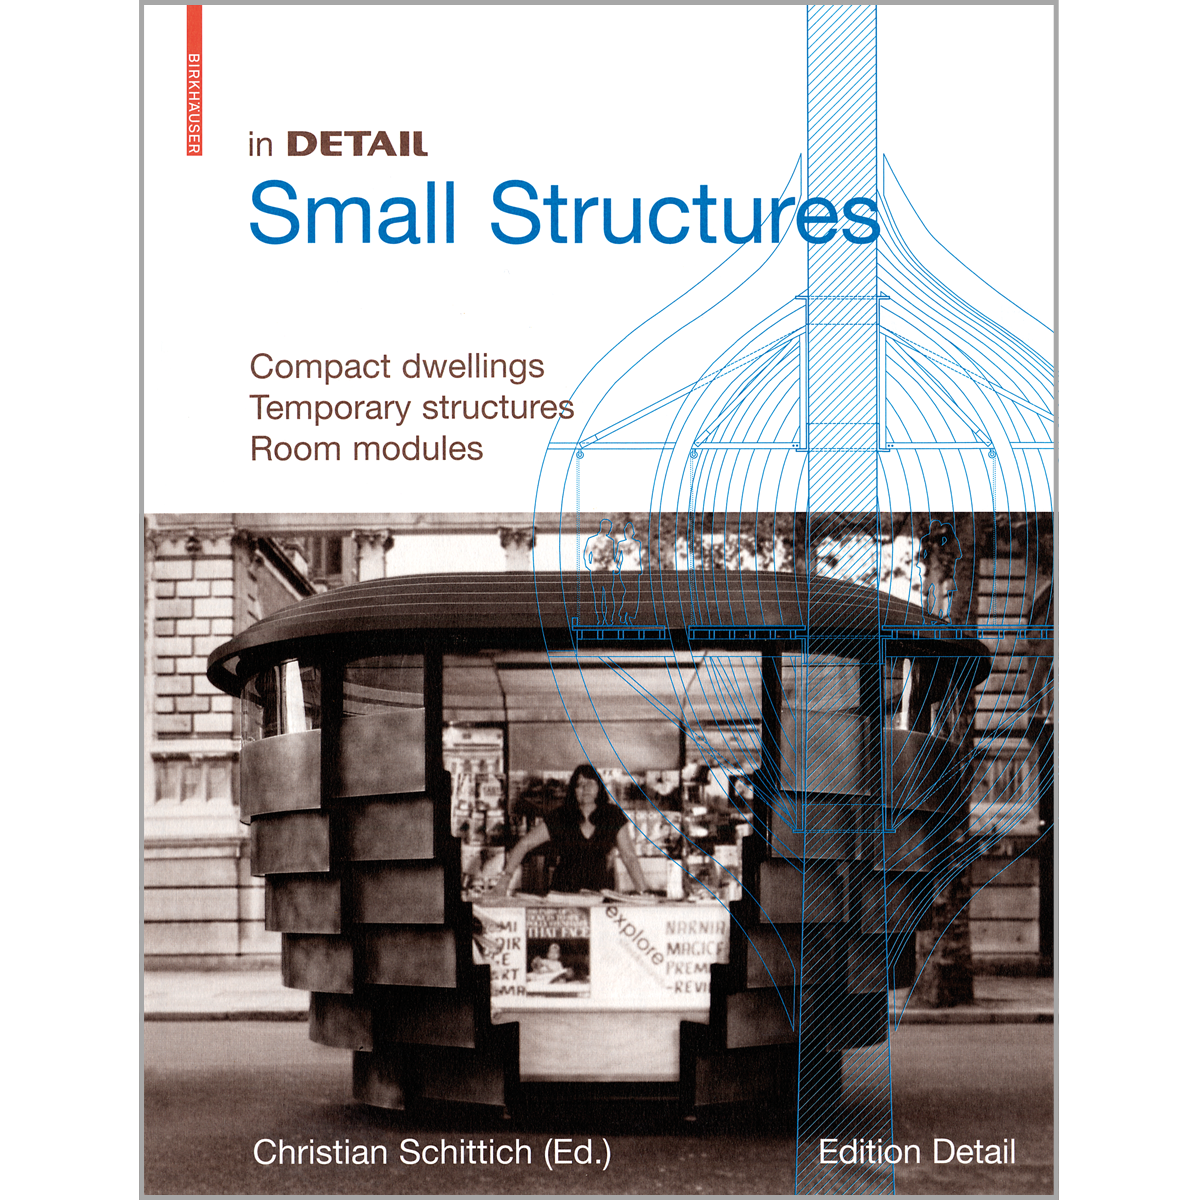 In Detail. Small Structures